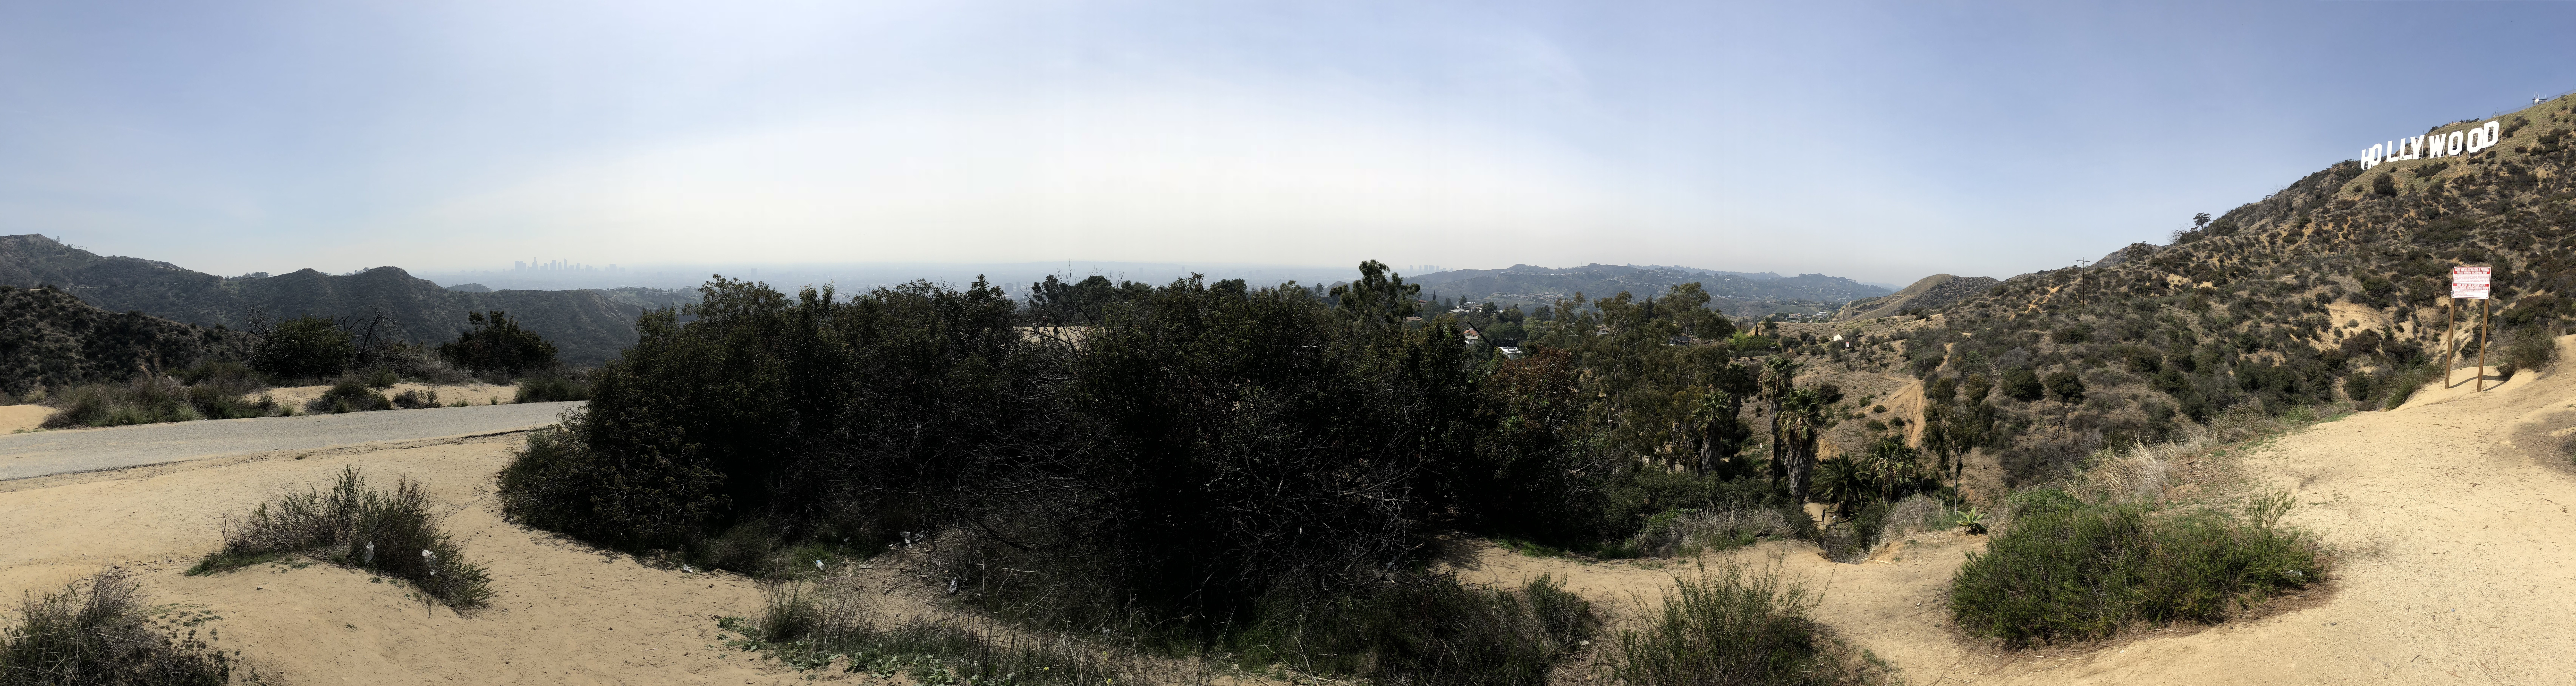 A view from the hike to the Hollywood Sign